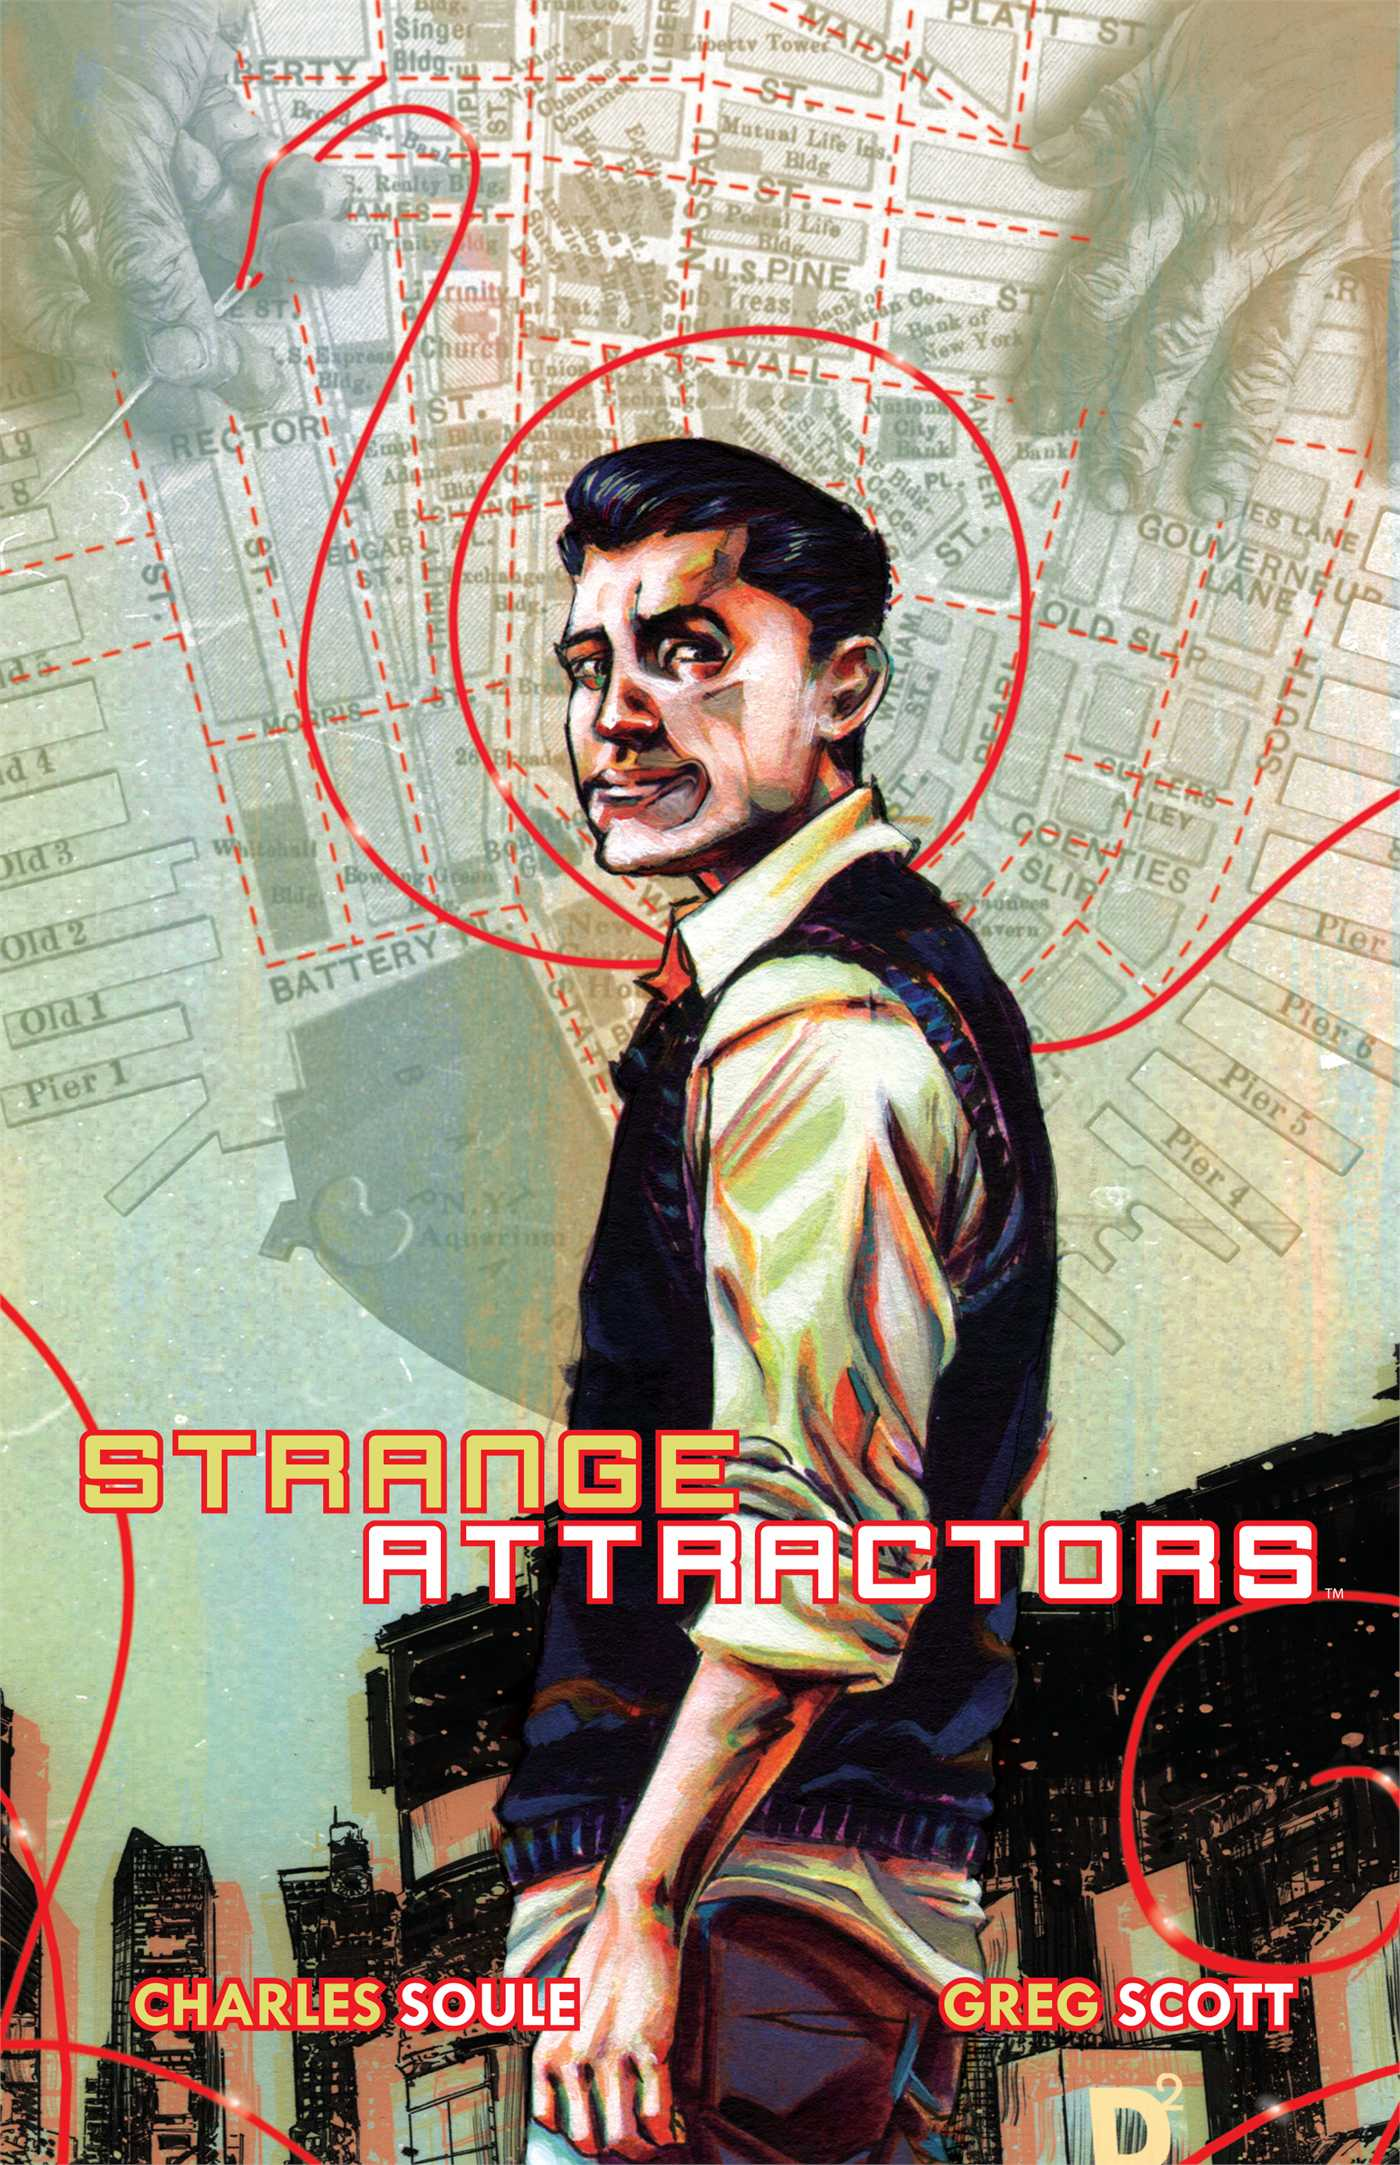 Strange-attractors-9781936393626_hr